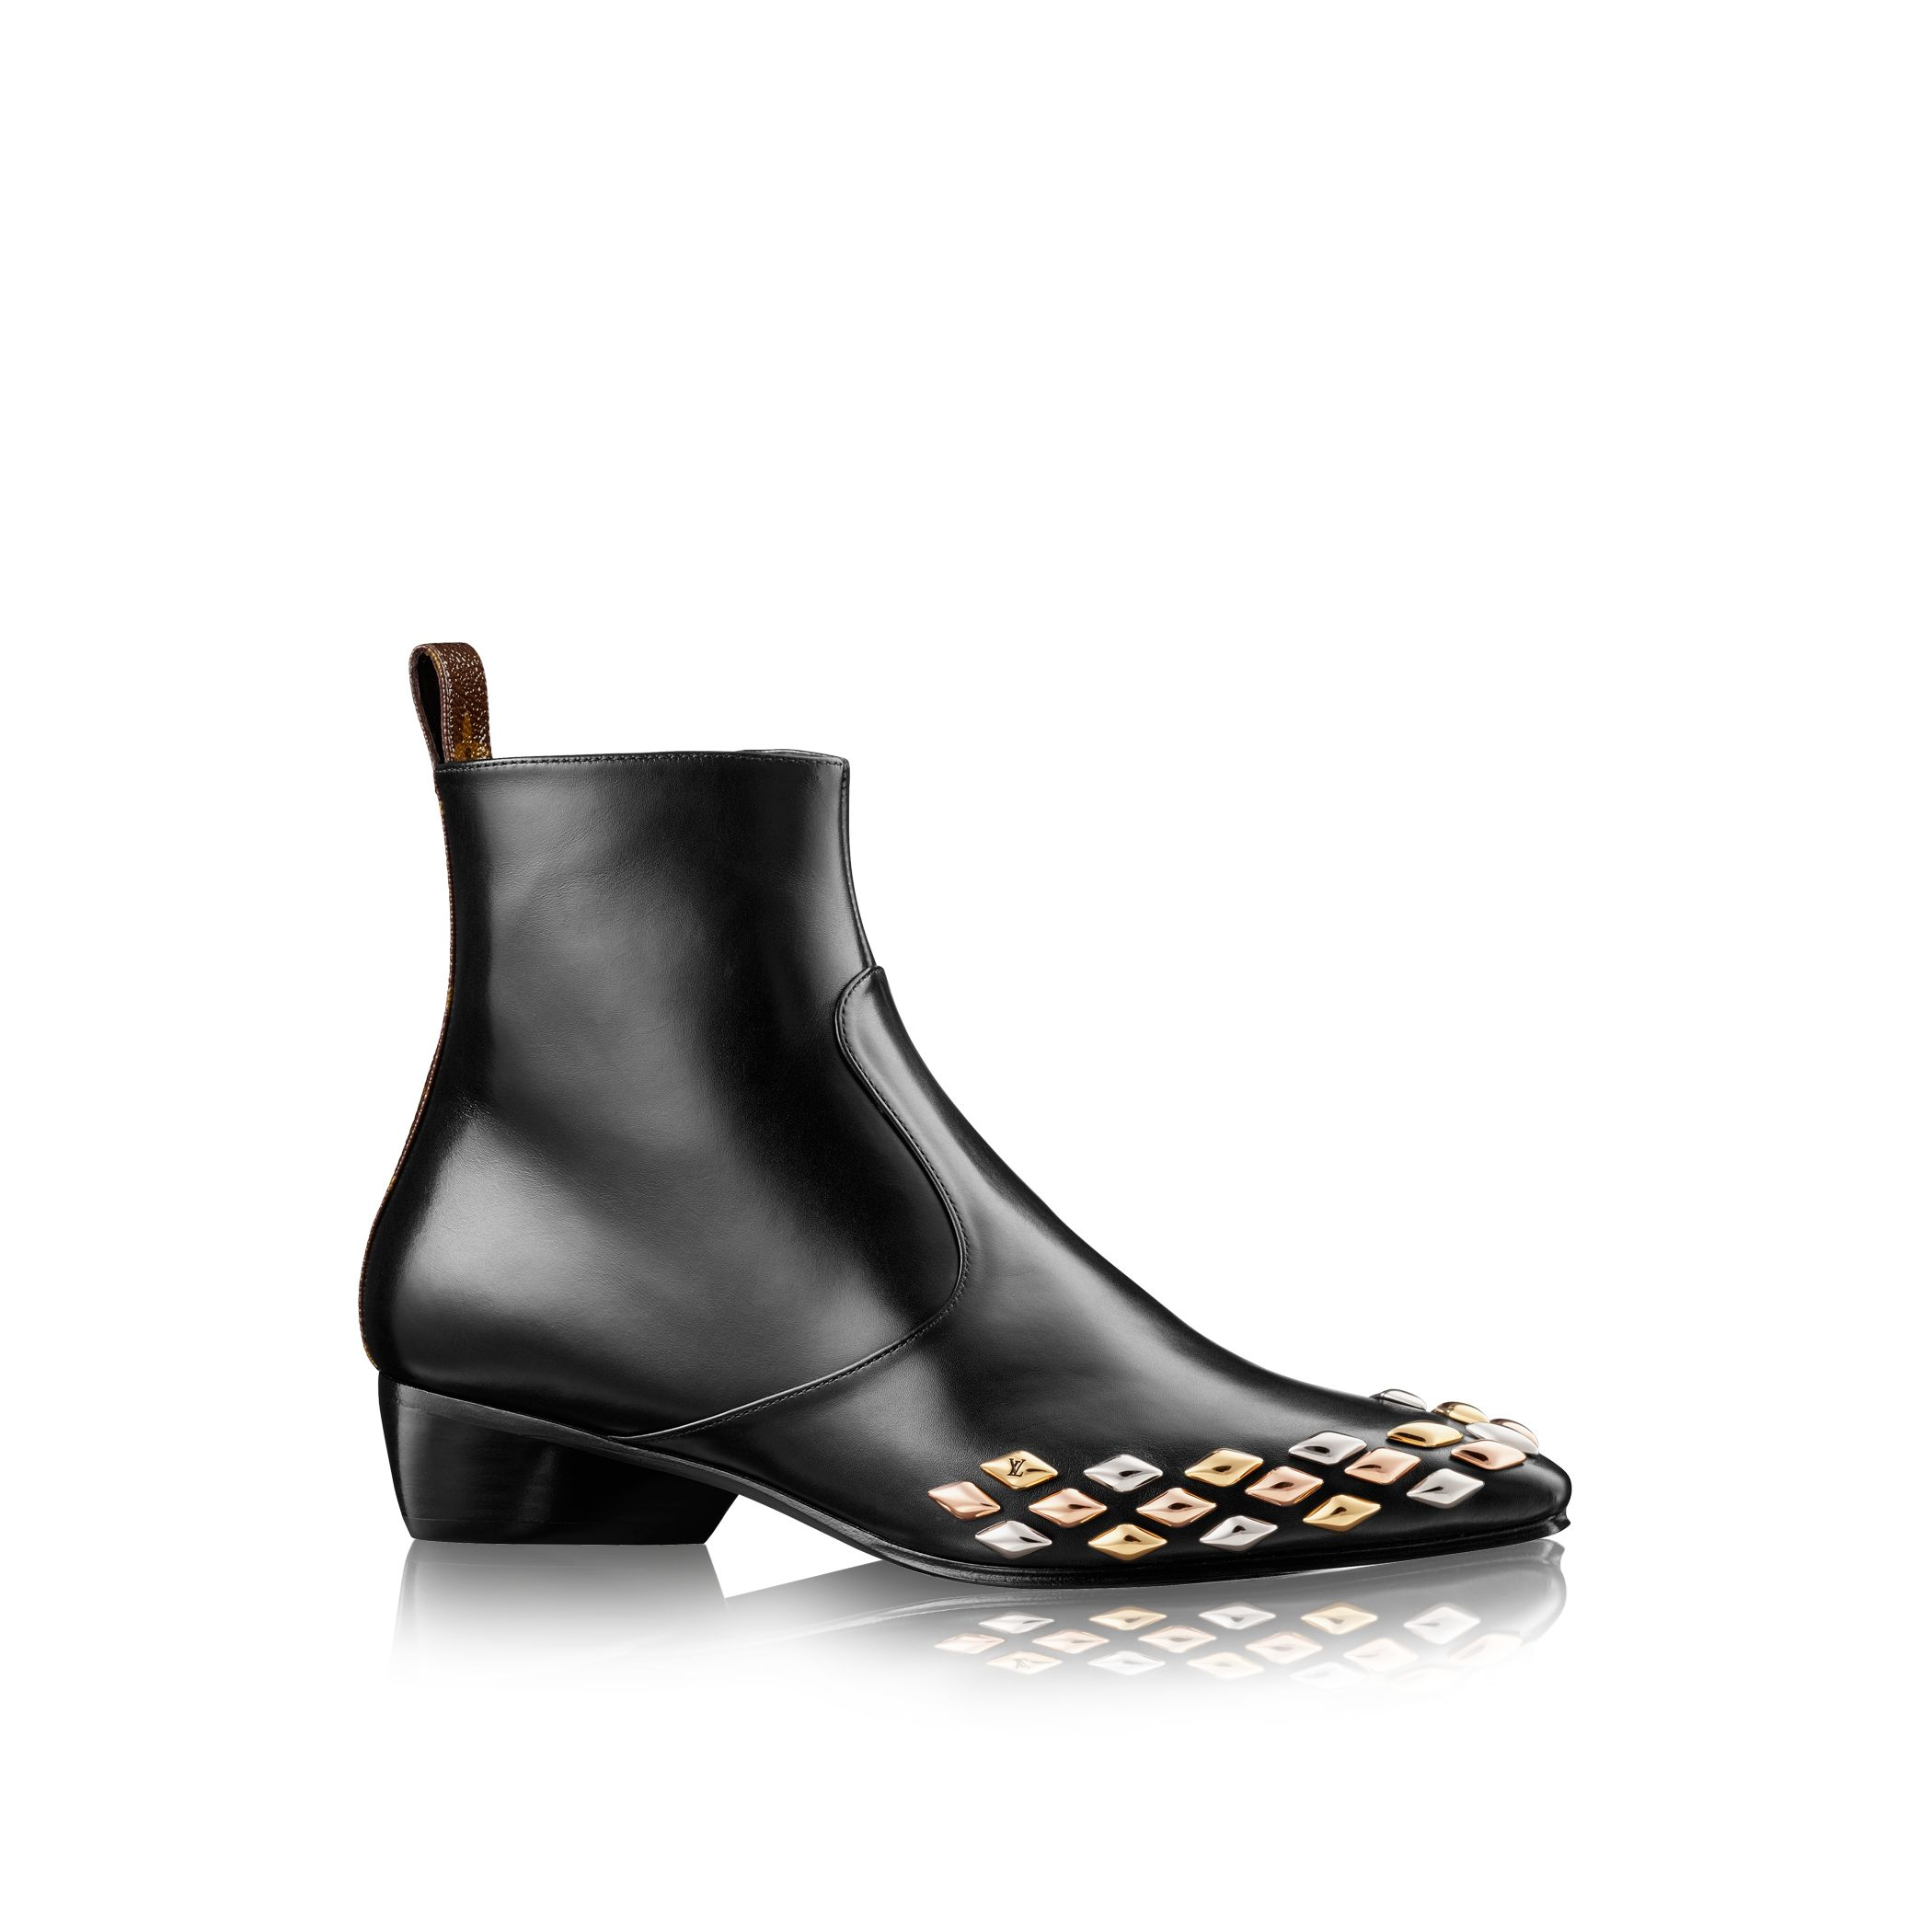 louis vuitton gold flat ankle boot in black lyst